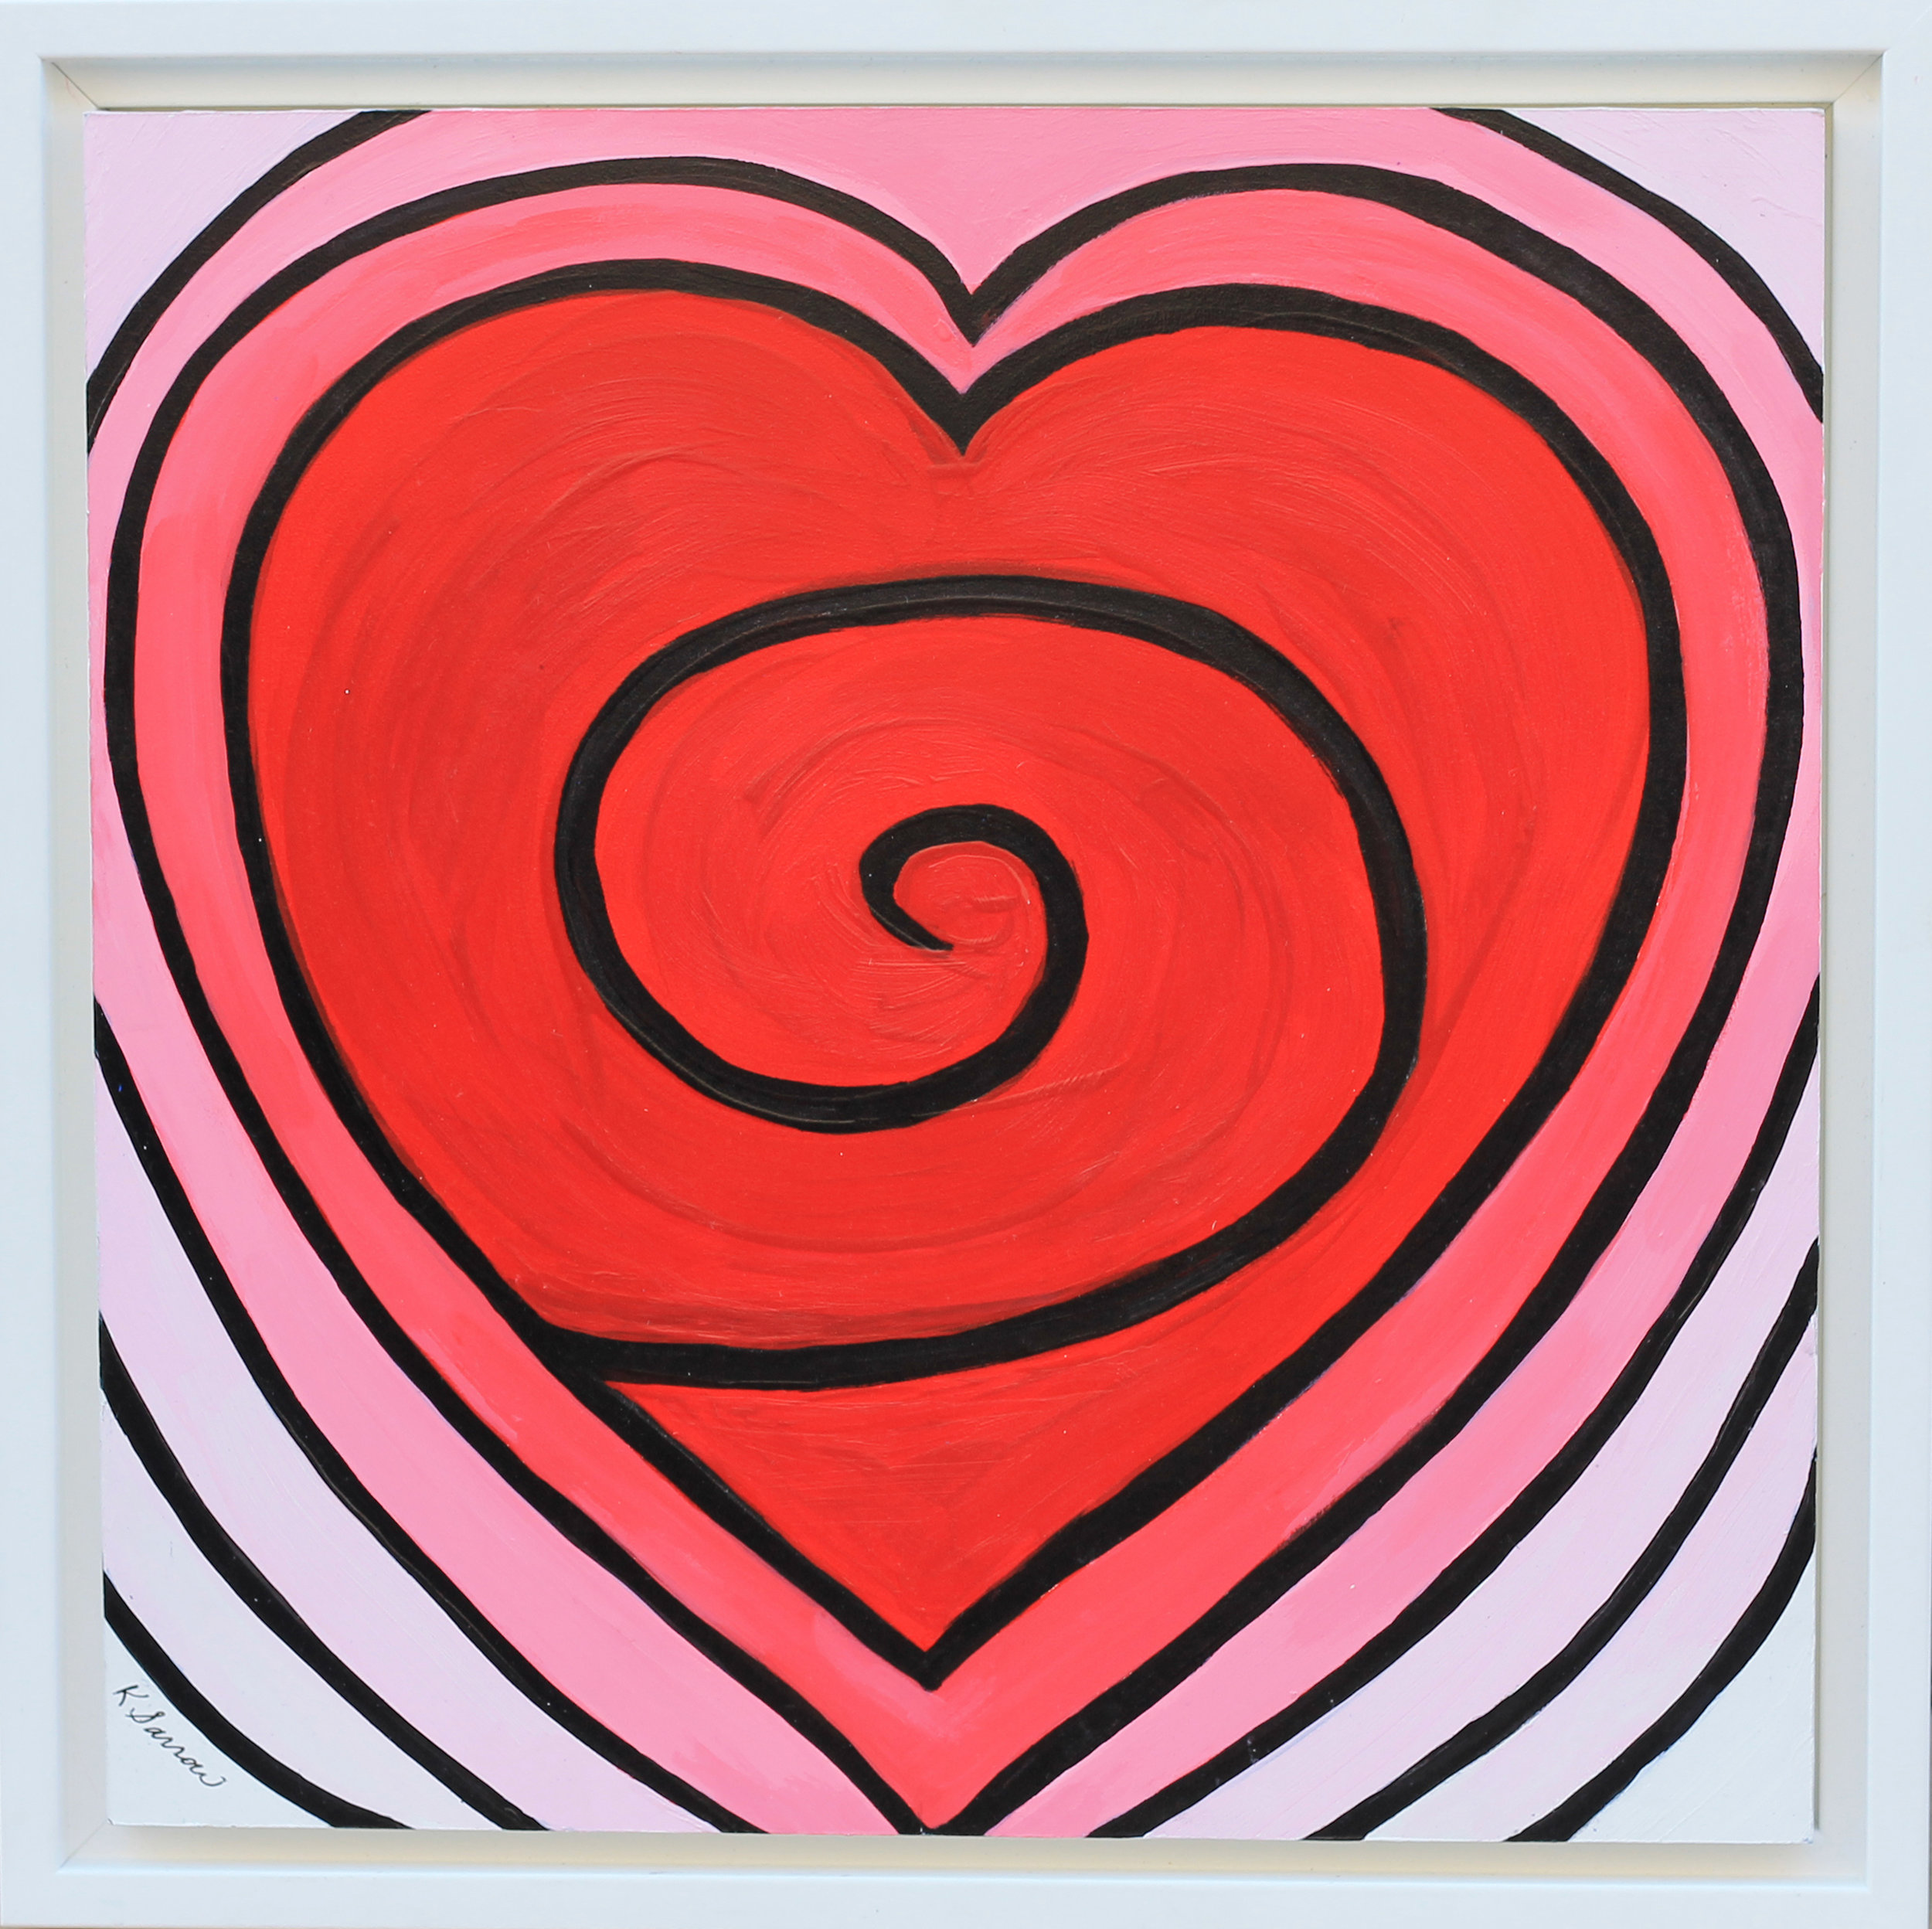 Sarrow_Karen-Heart 05-Acrylic and Marker-12 x 12in-IMG_9640.jpg